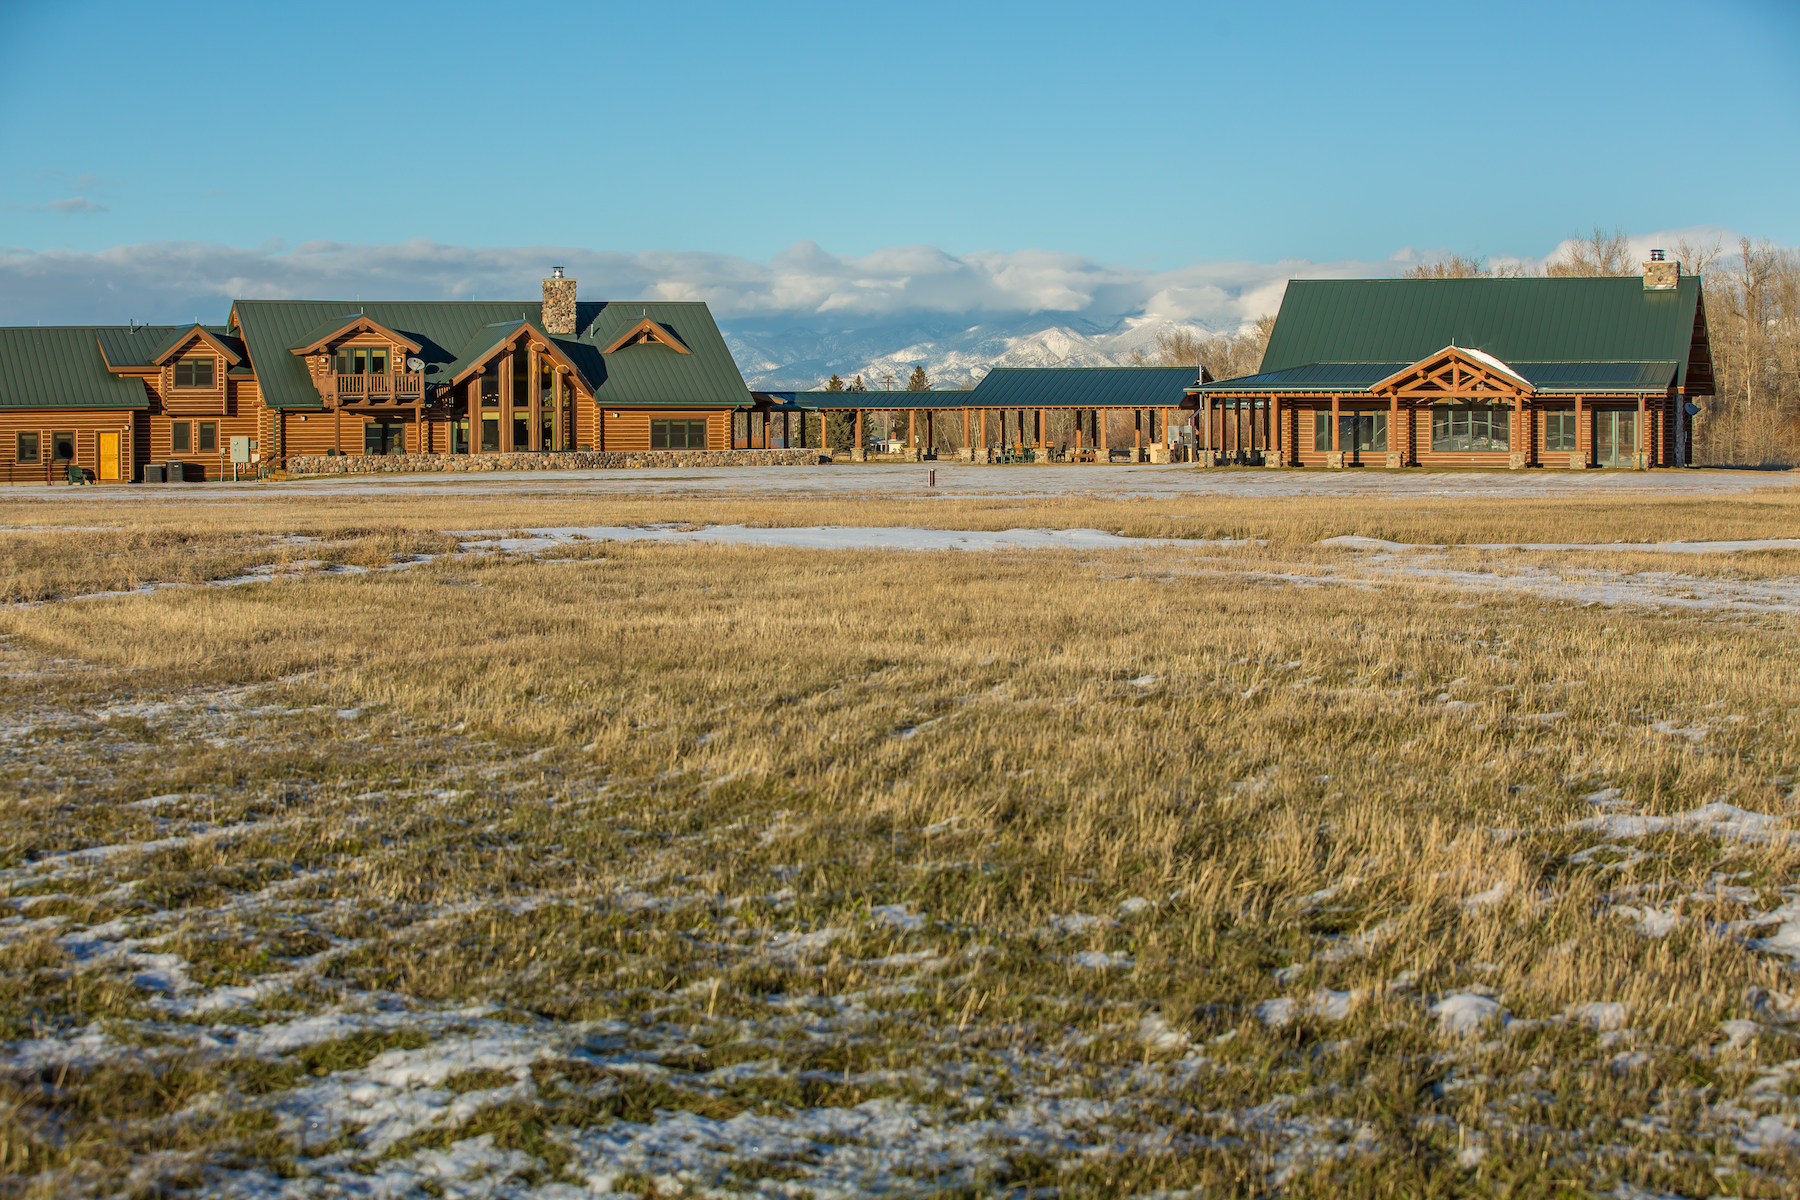 Single Family Home for Sale at Gallatin Gateway Log Home 1021 Gateway South Road Gallatin Gateway, Montana, 59730 United States